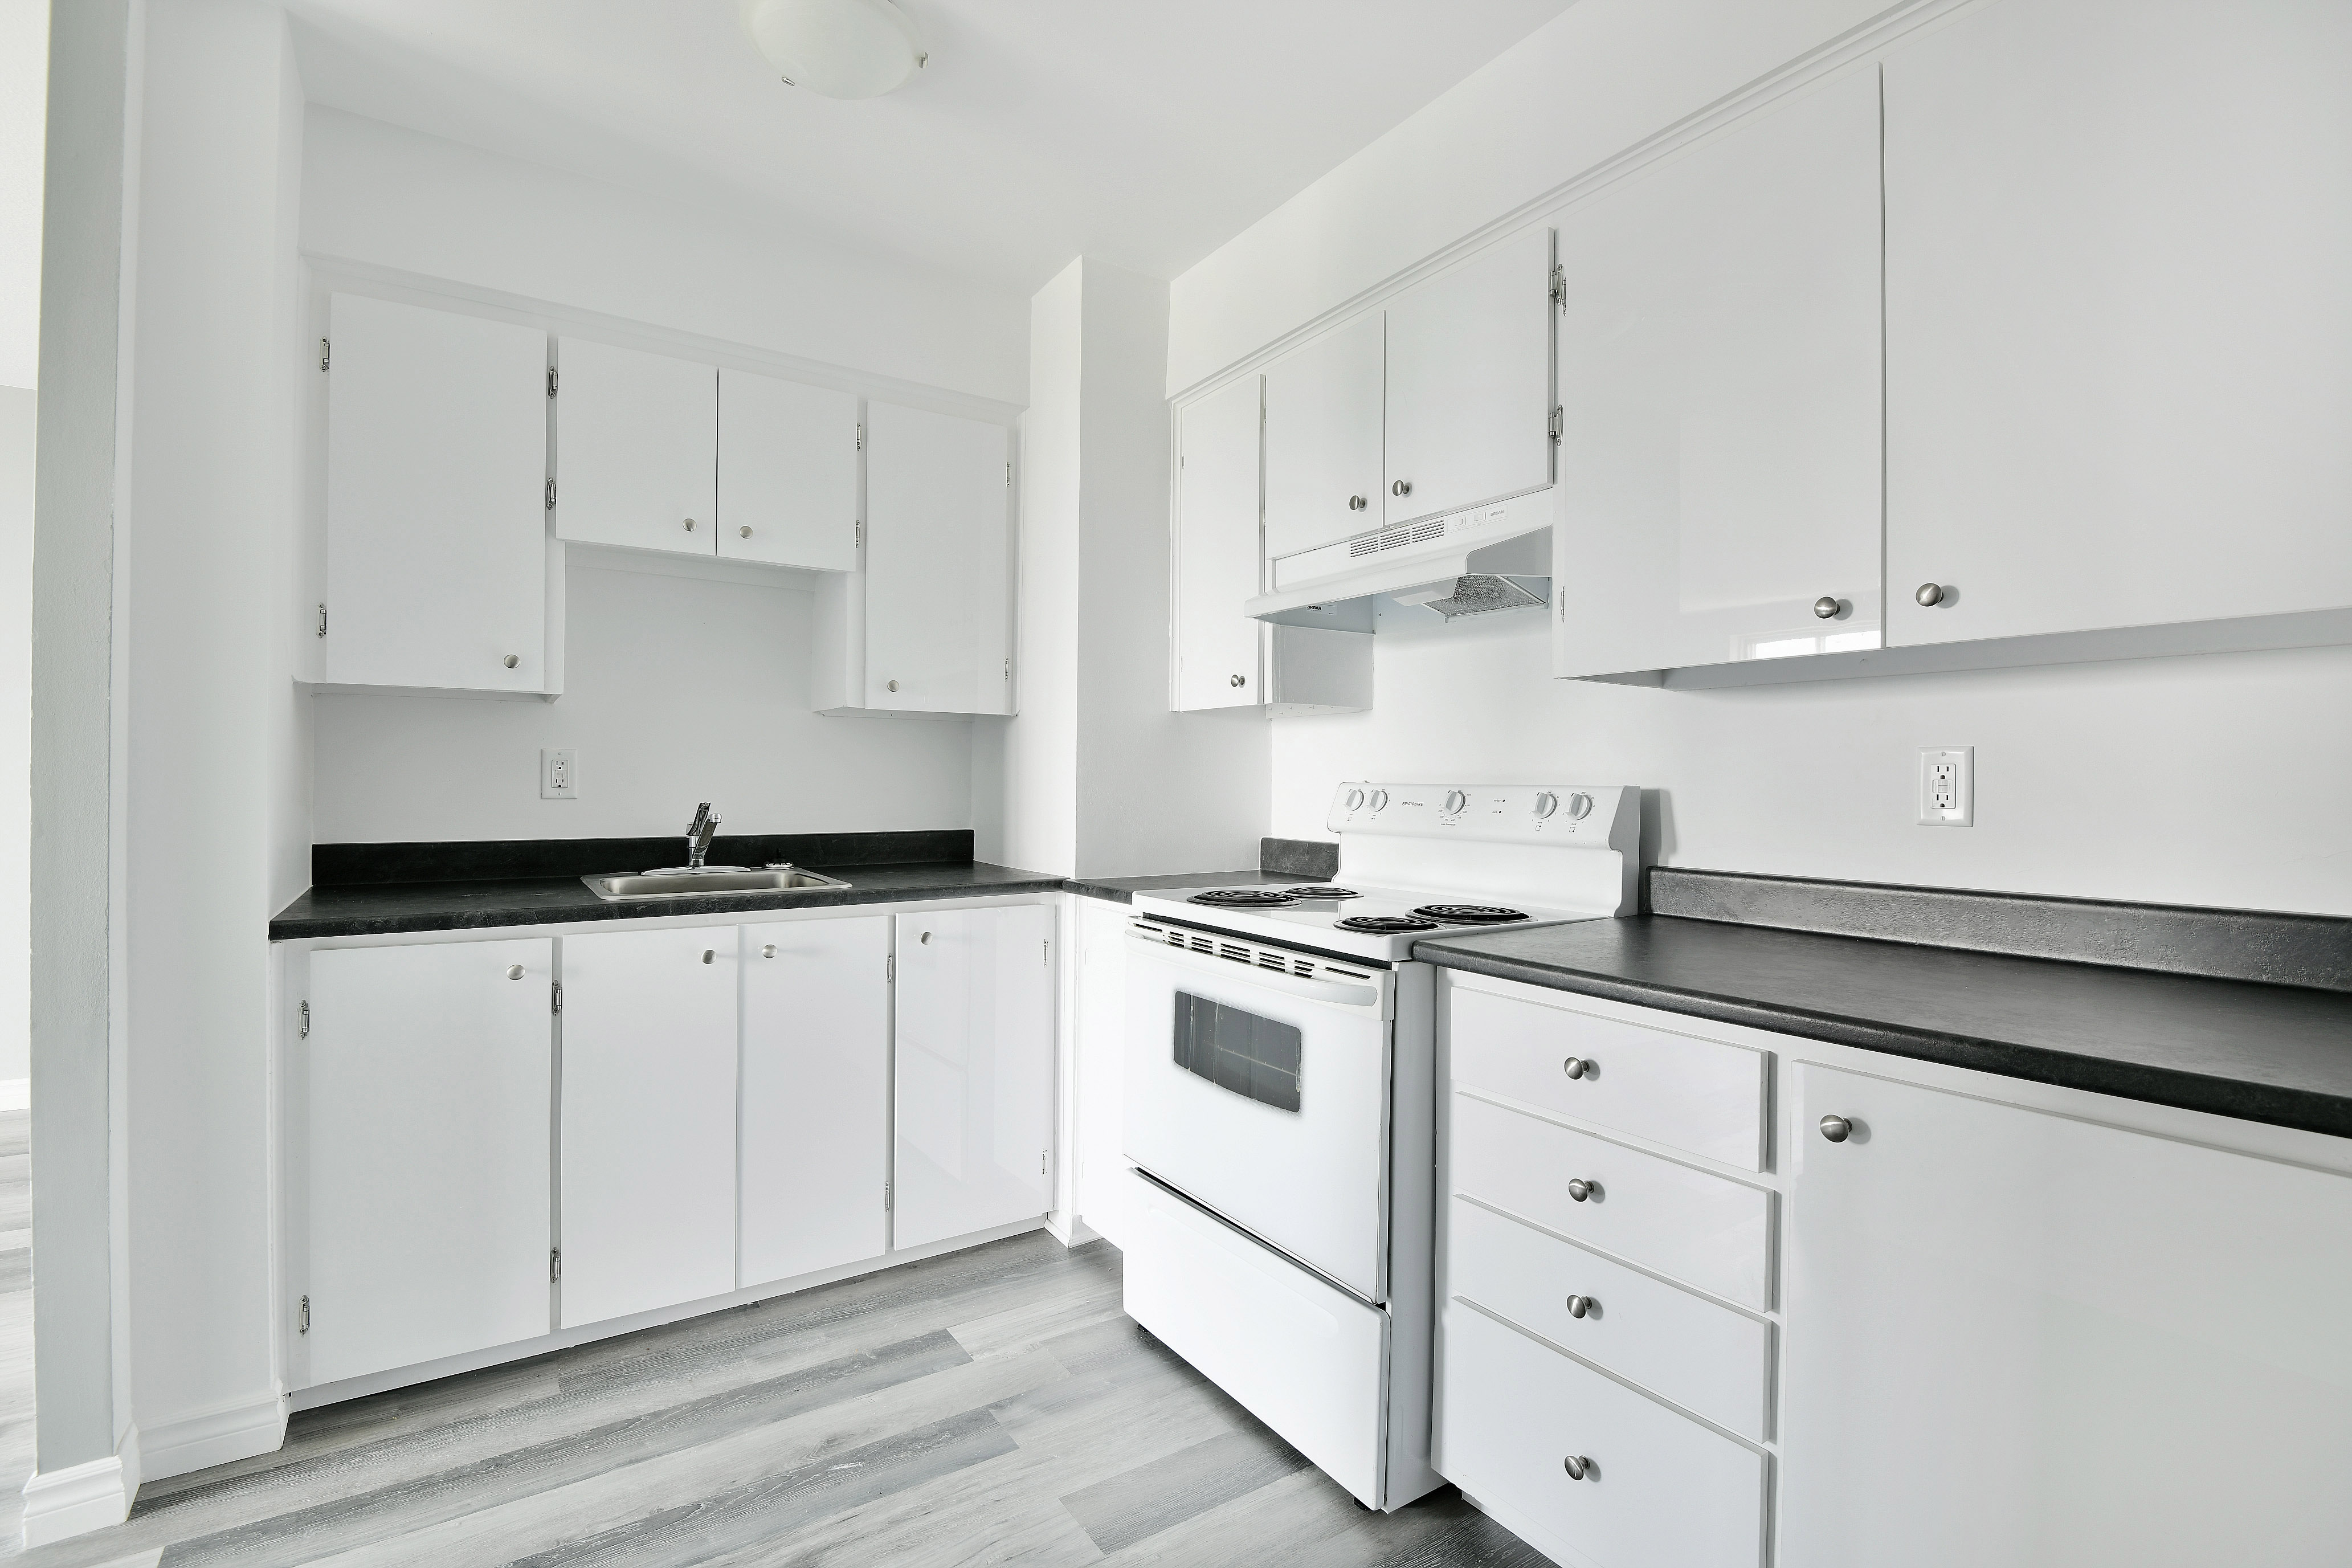 1 bedroom Apartments for rent in Gatineau-Hull at Habitat du Lac Leamy - Photo 05 - RentQuebecApartments – L401592